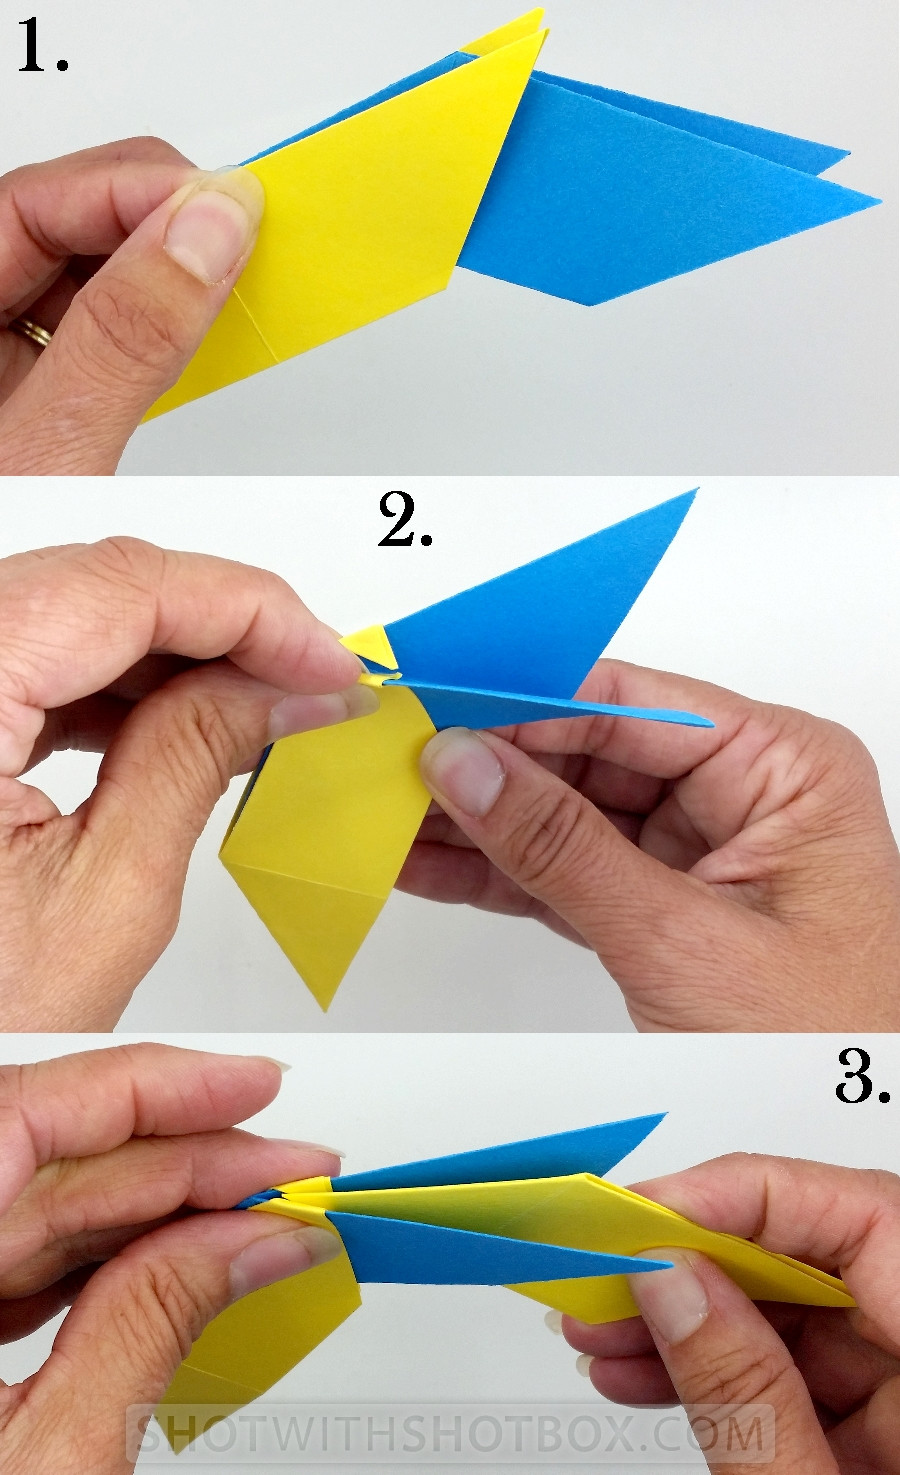 Step 6: Connect Your Rhombuses